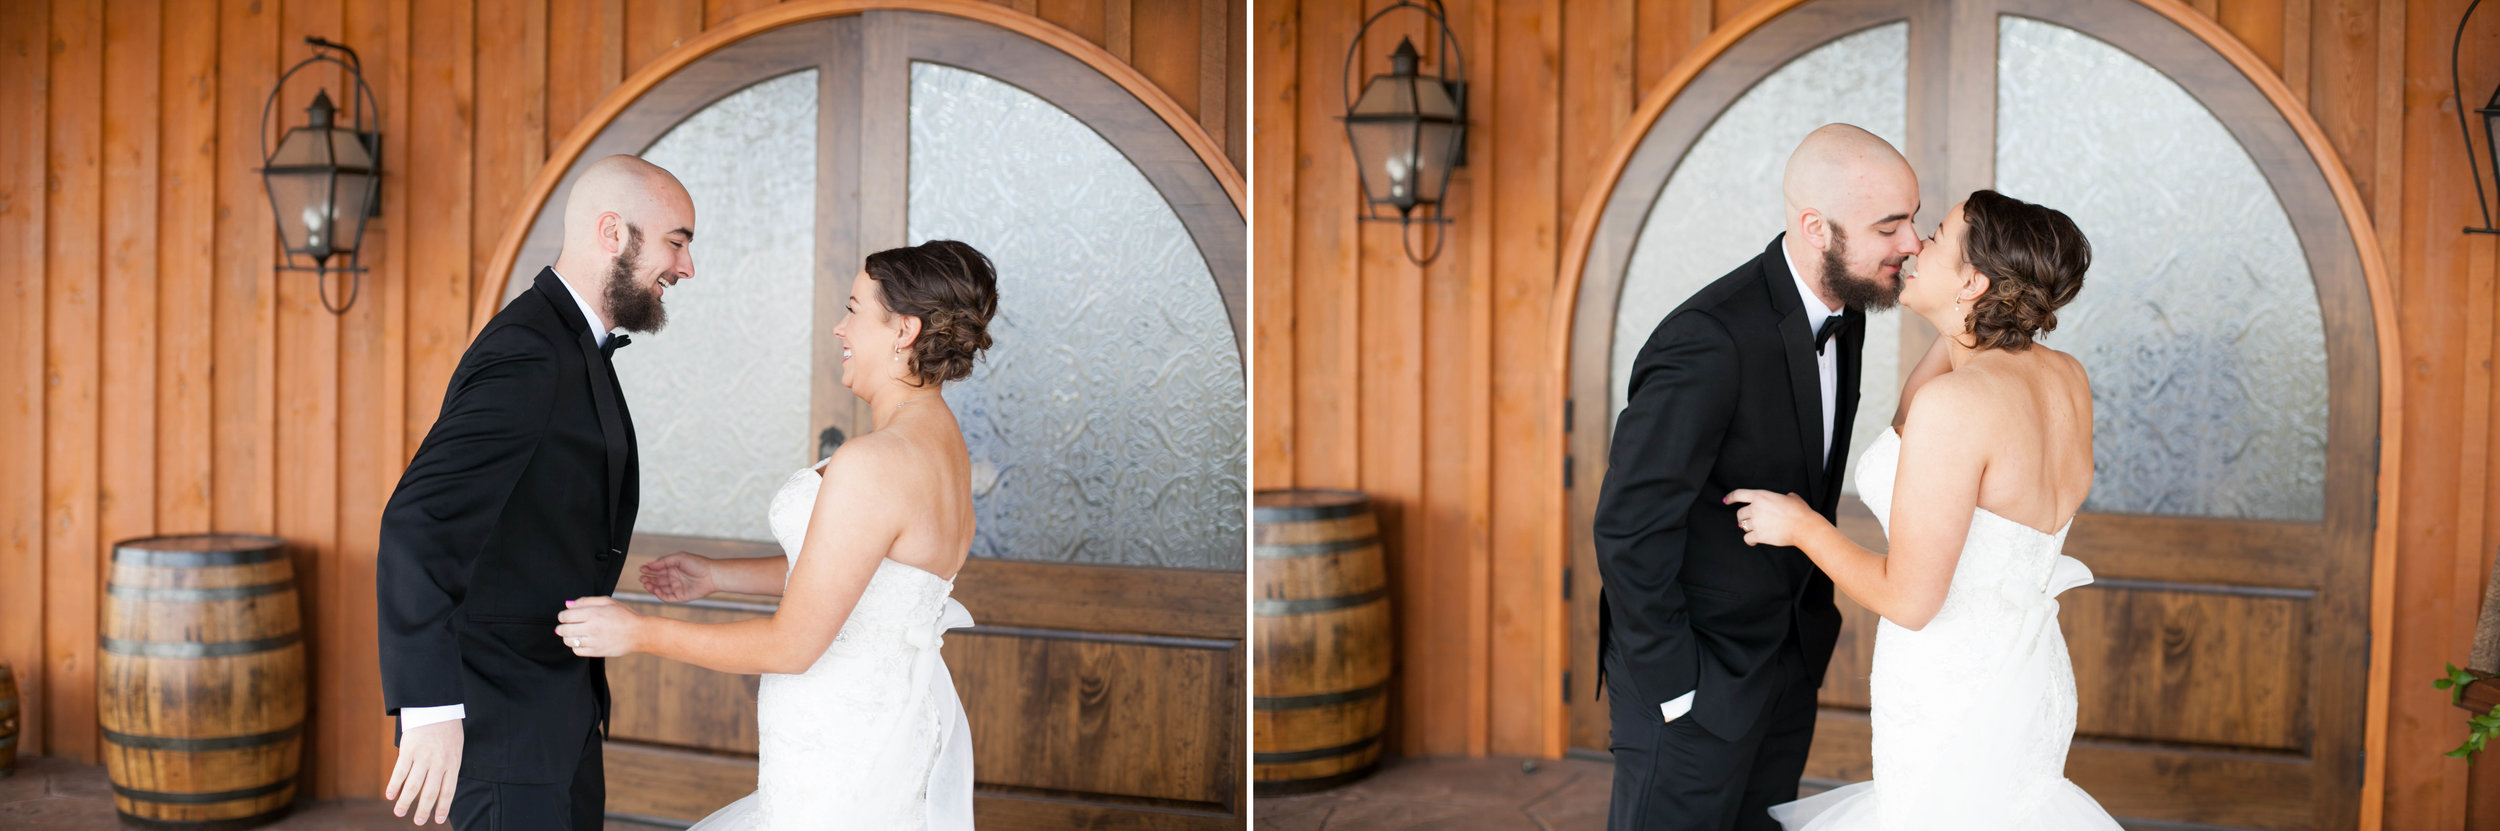 Rolling Meadows Ranch Wedding 013.jpg